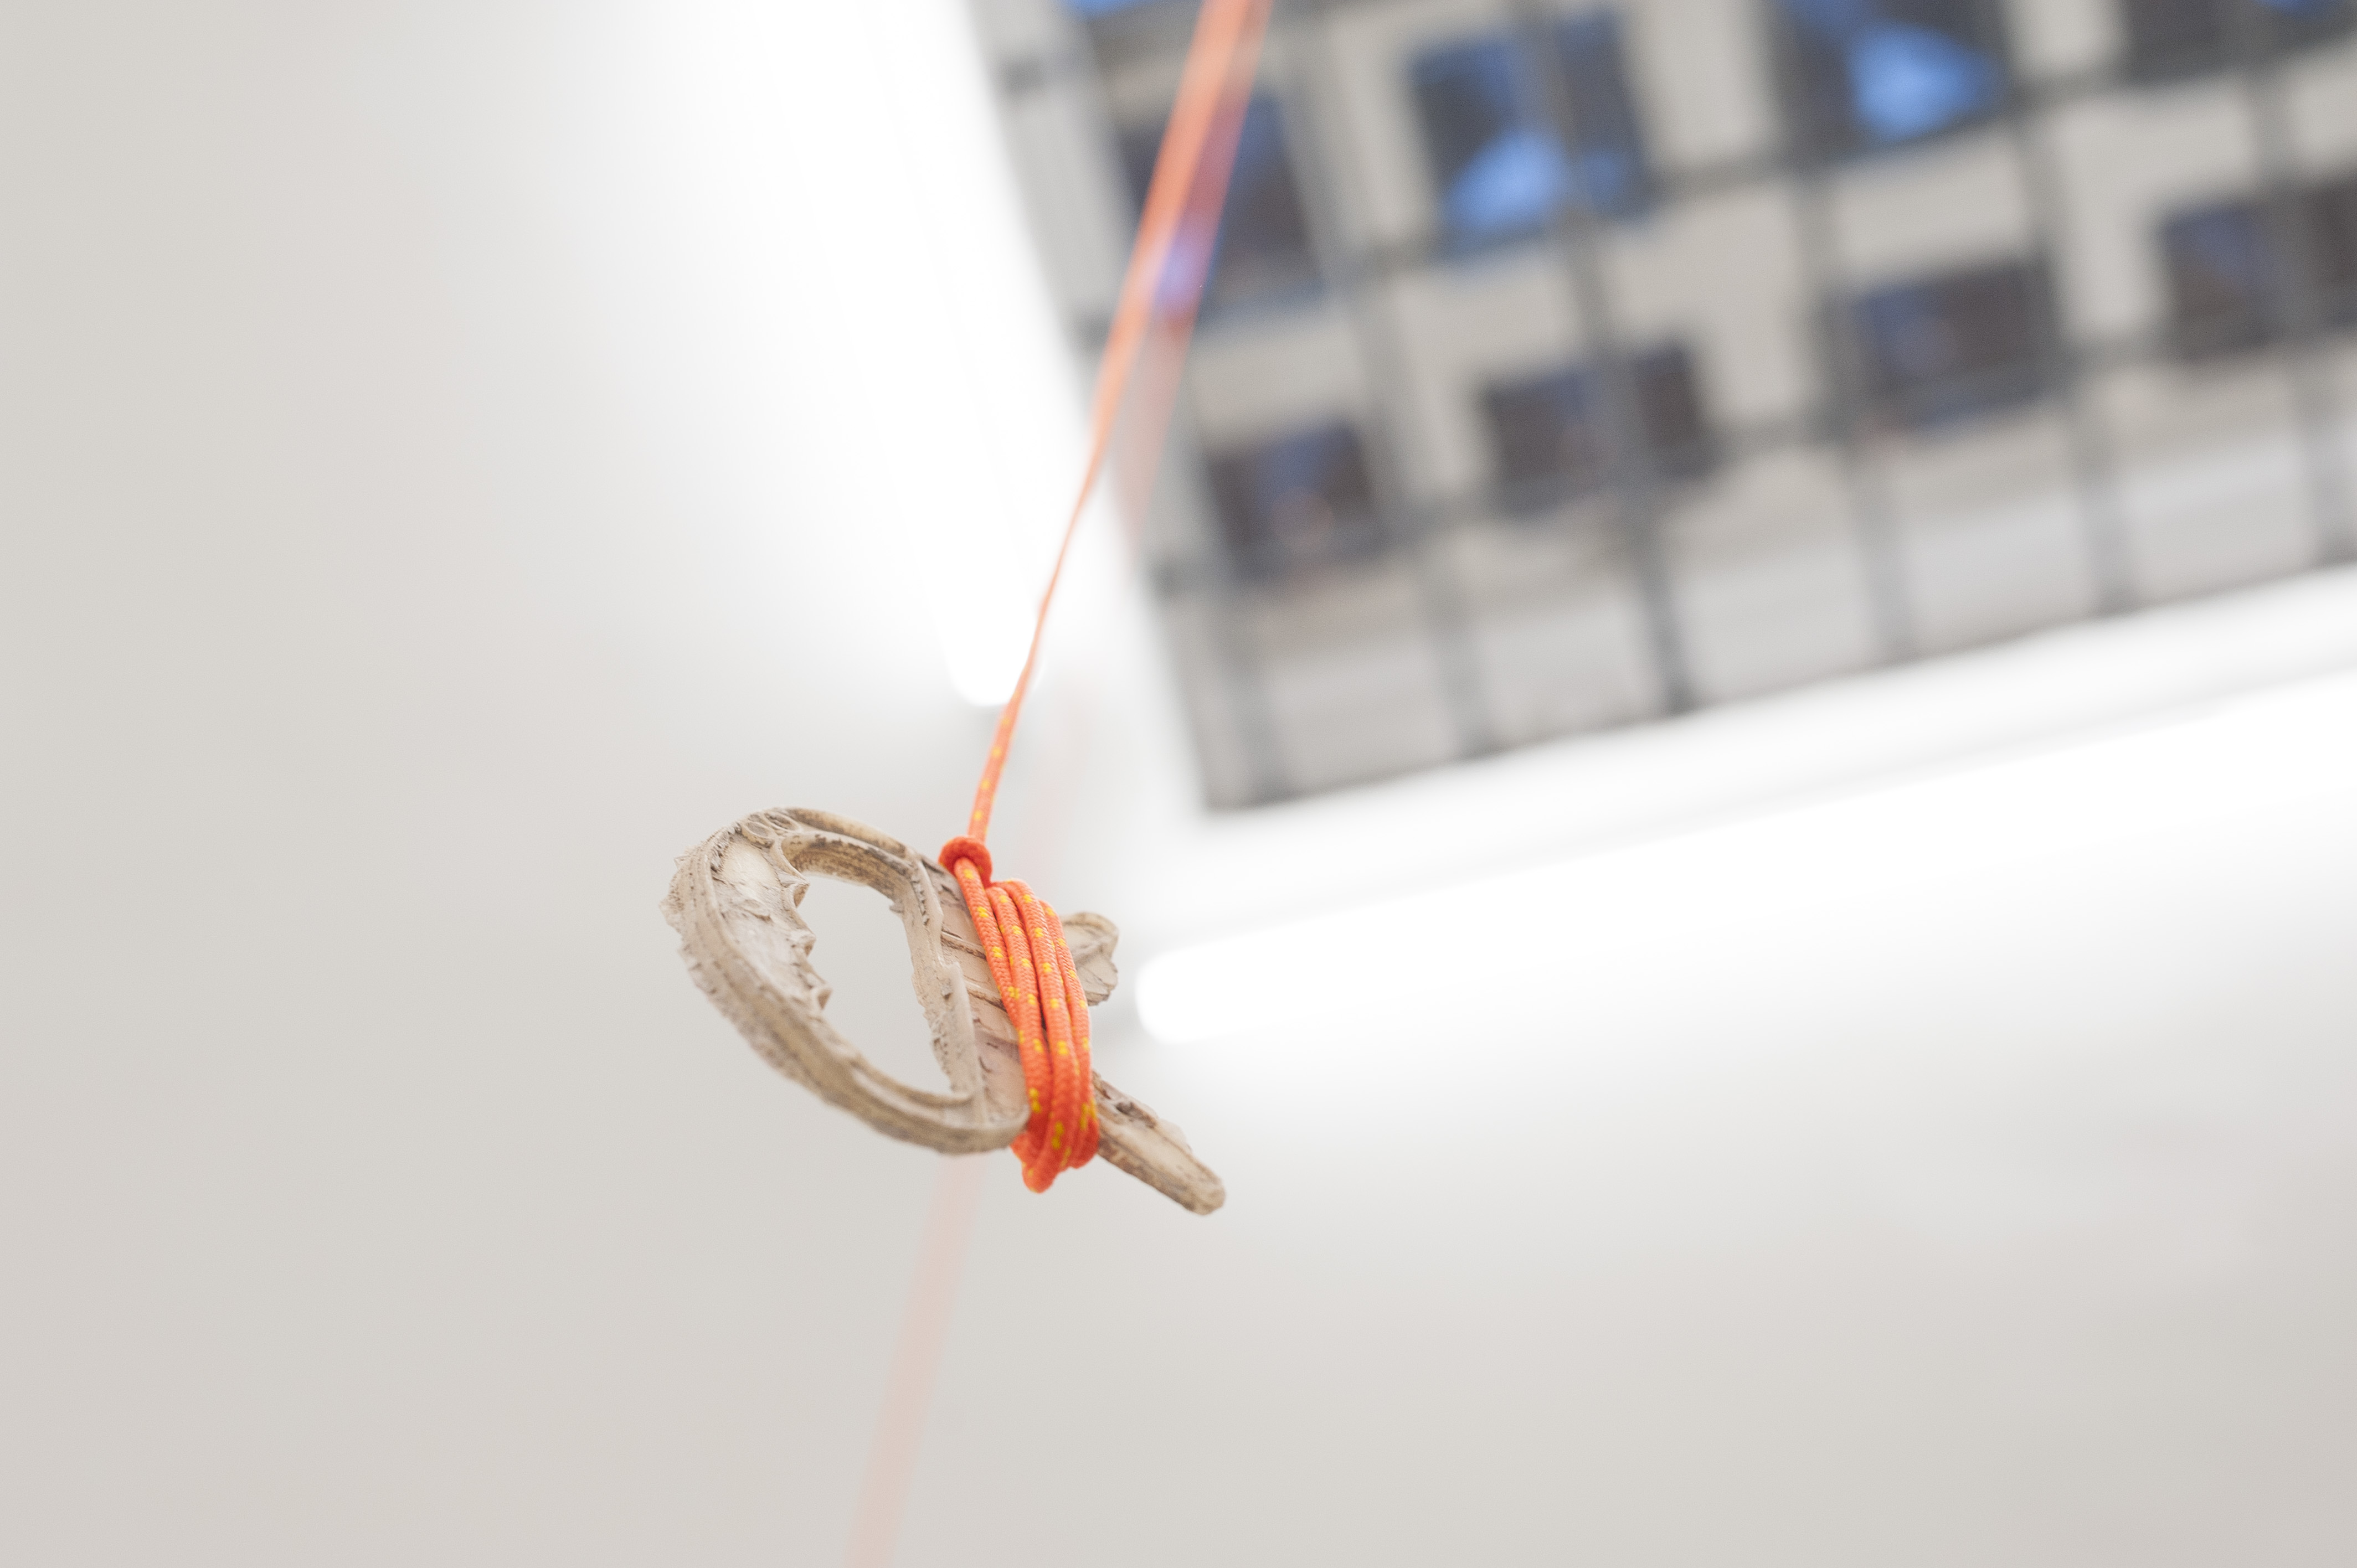 3- Decollo - installation - variable dimension - carbon, rope, wax, clay - 2019 detail 02